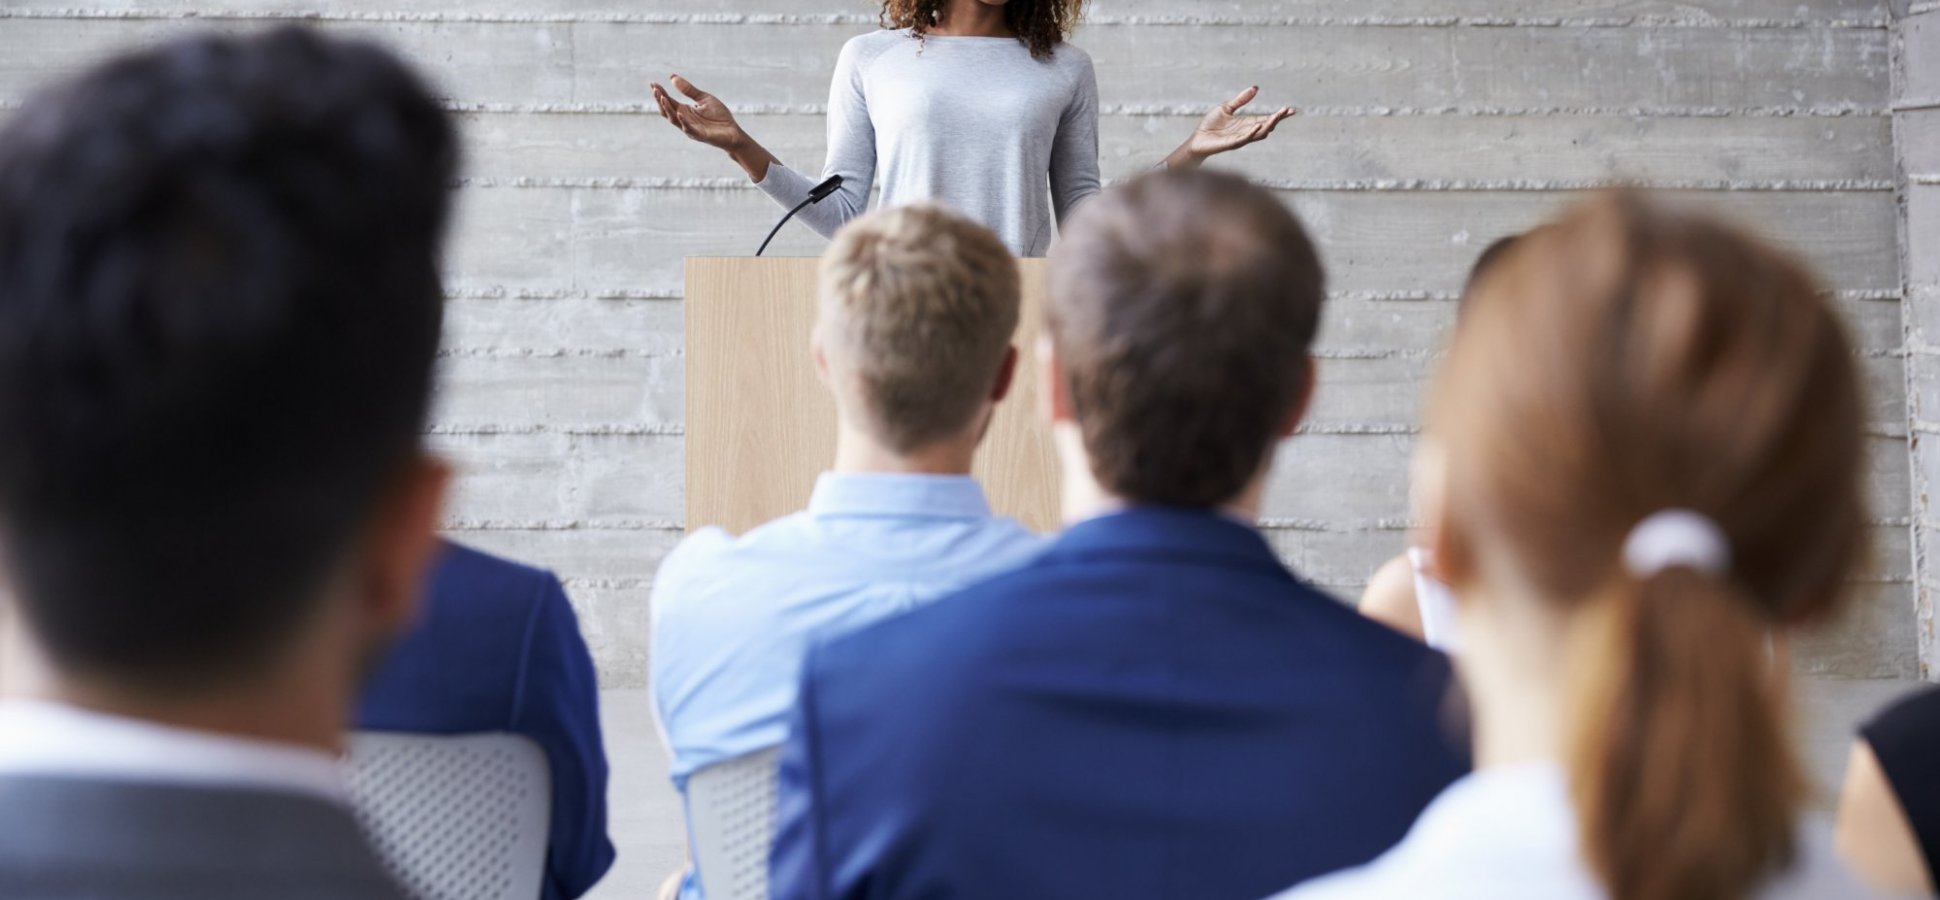 So You Accepted to Speak at an Event. Now What? Here's How to Deliver a Great Performance